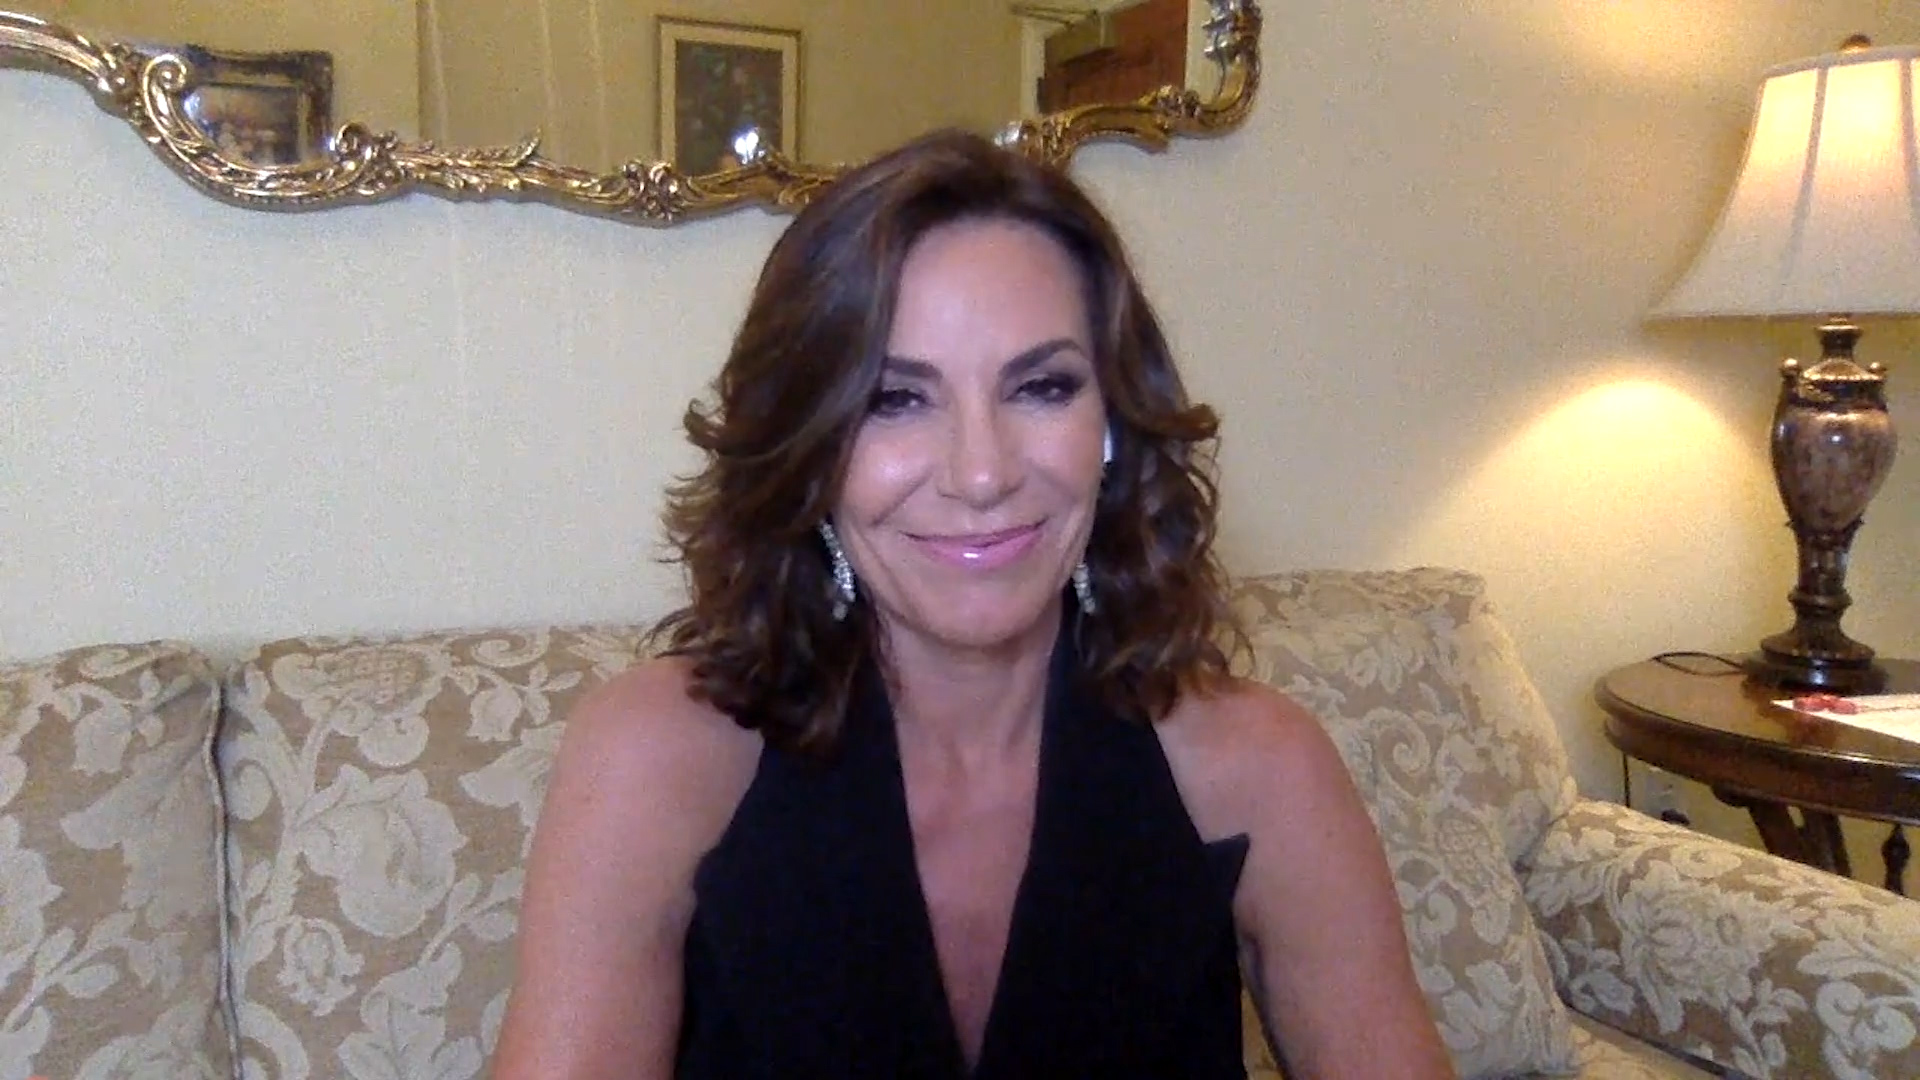 Luann de Lesseps on Her Previous Sobriety